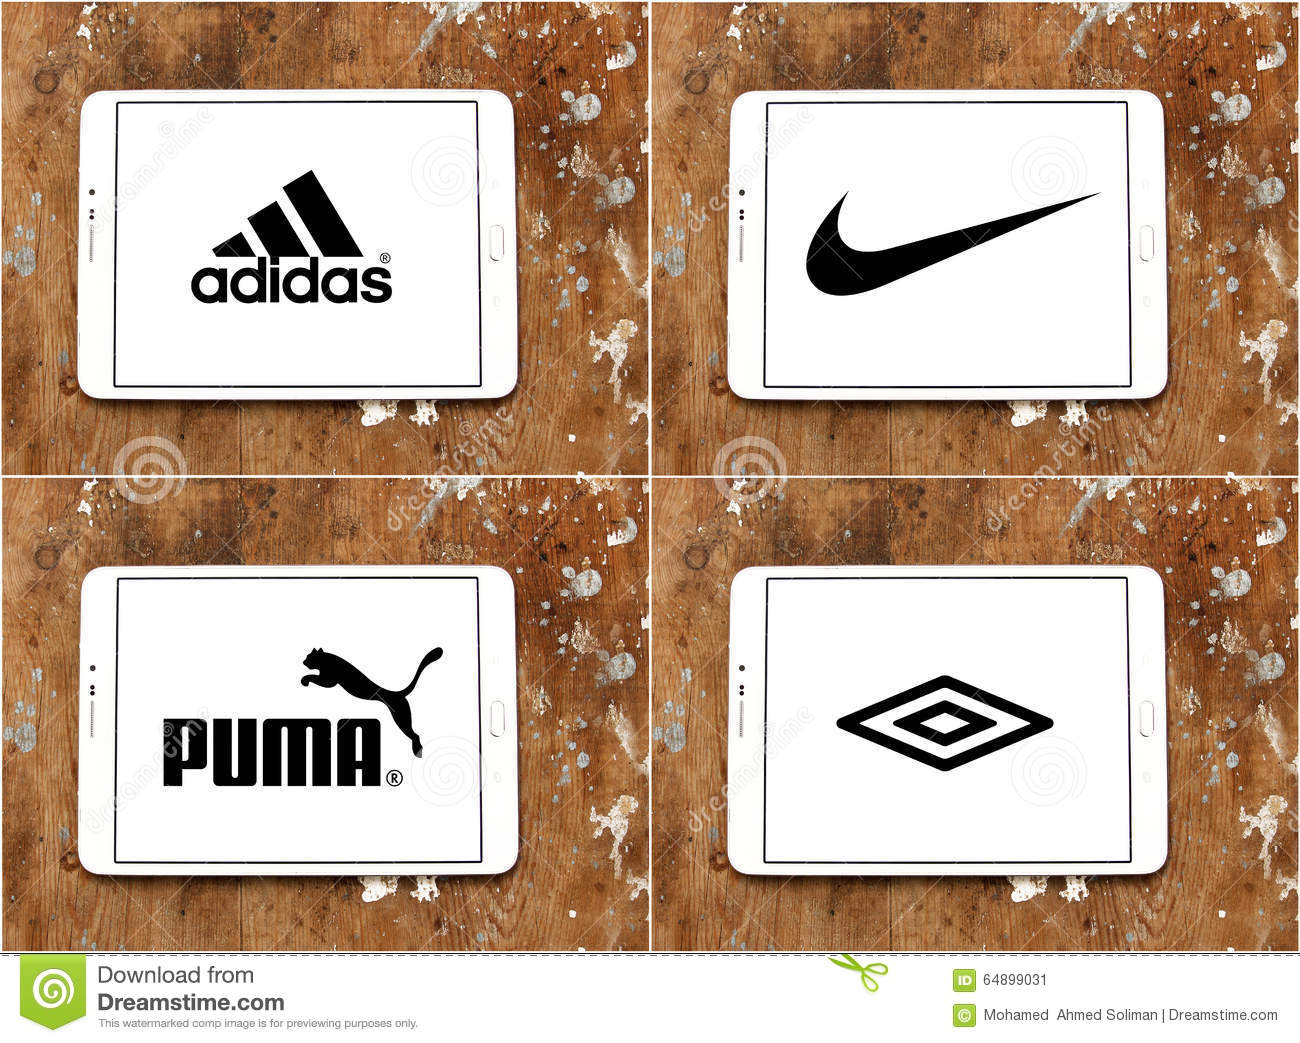 74da3a6dadcc Logos and brands of worldwide sportswear companies adidas